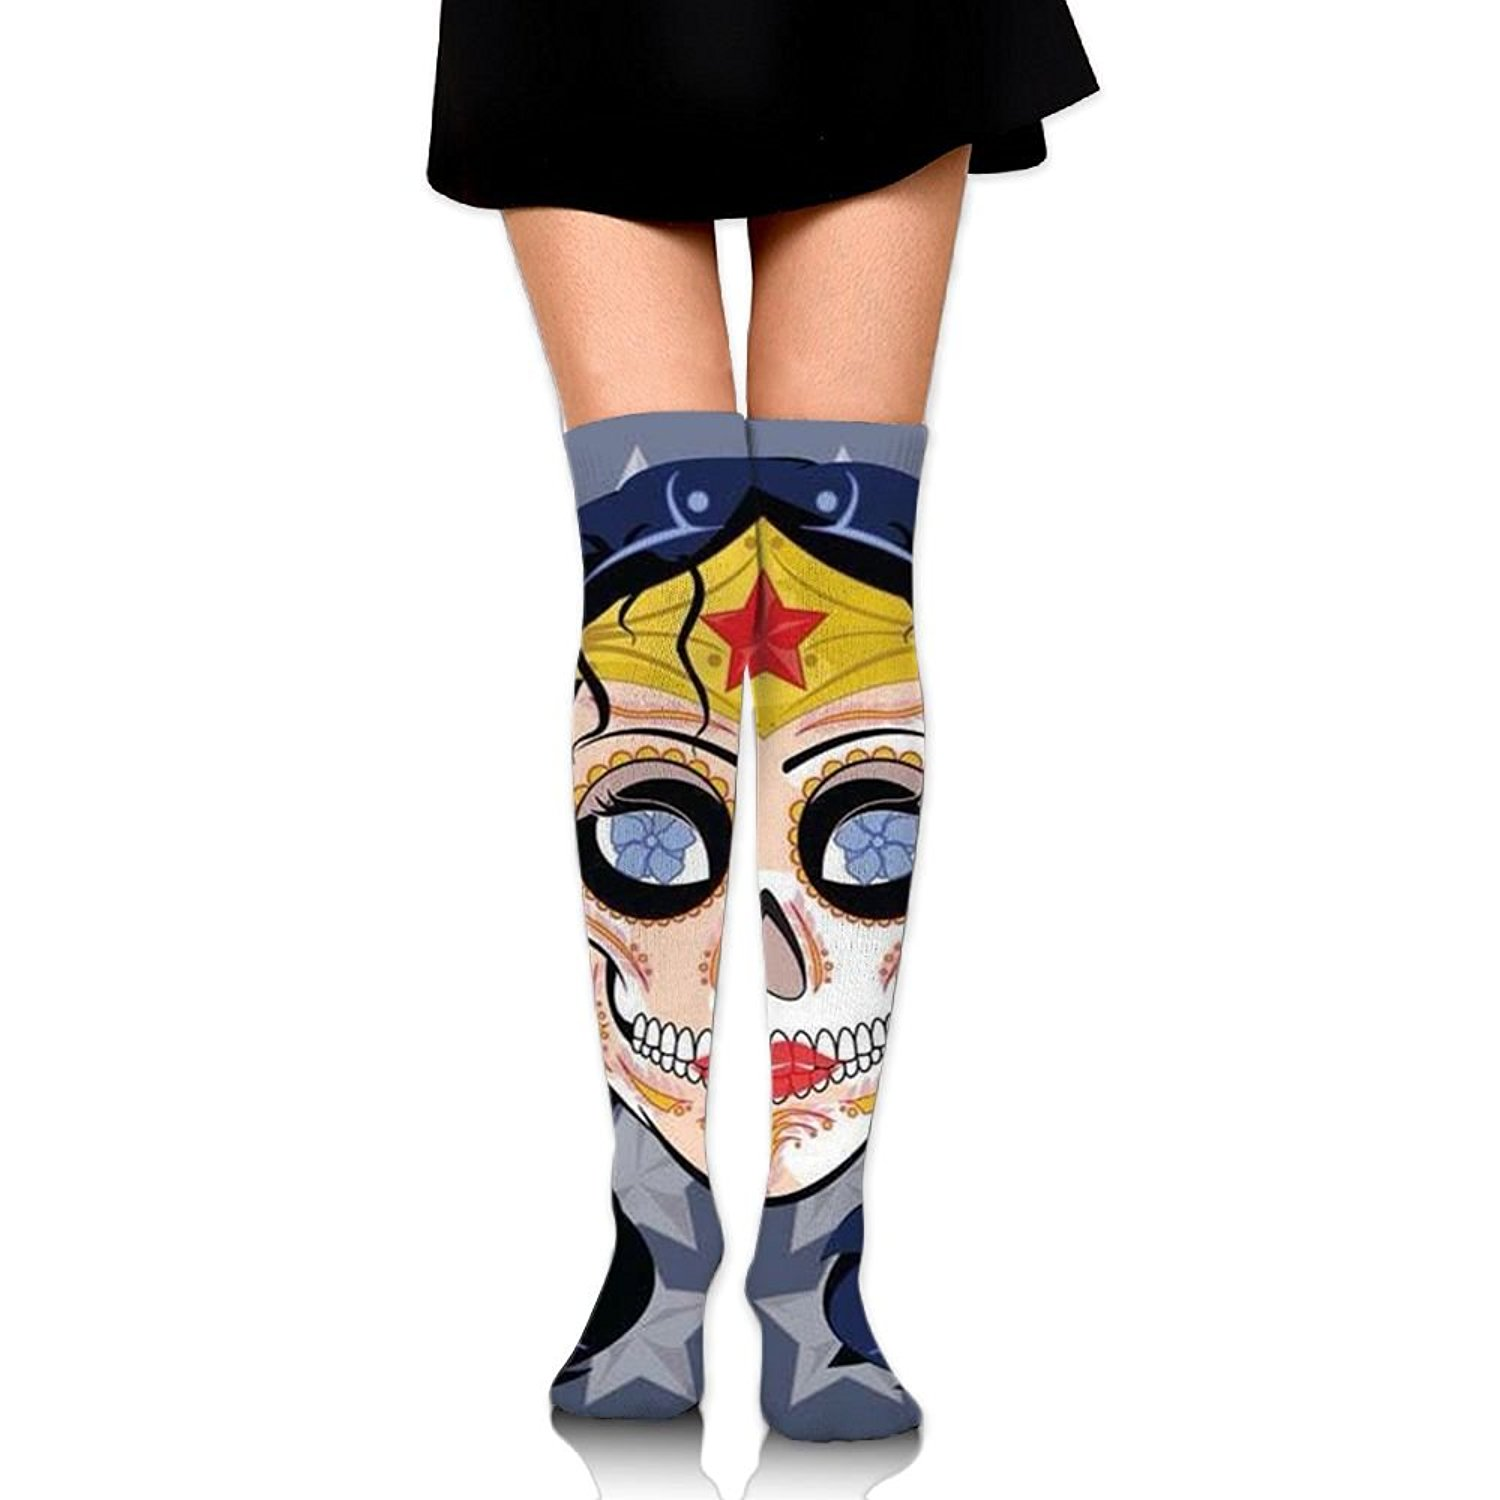 47bee1717 Get Quotations · Novelty Sugar Skull Women Thigh High Socks Softball Knee  High Over The Knee Socks For Women